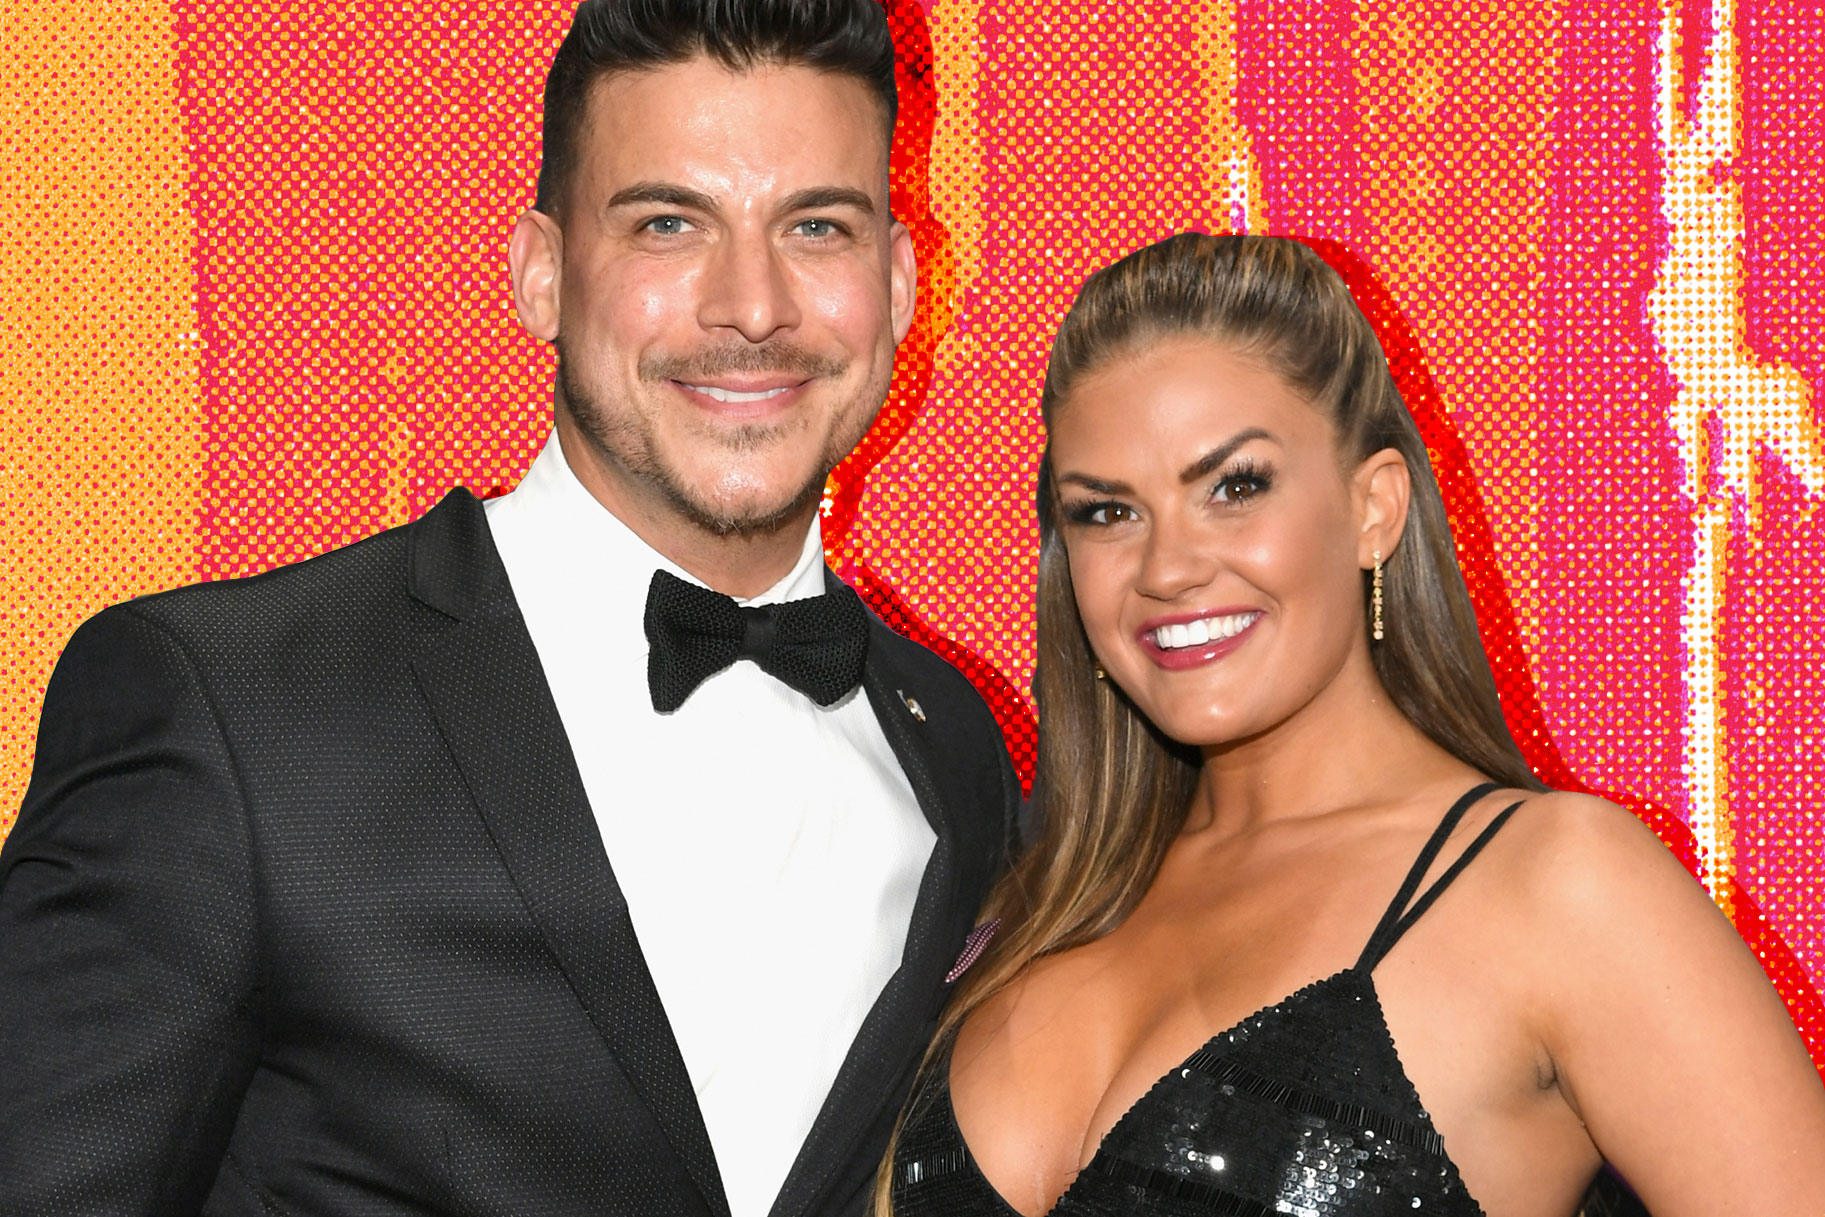 Jax Taylor & Brittany Cartwright Wedding Rings